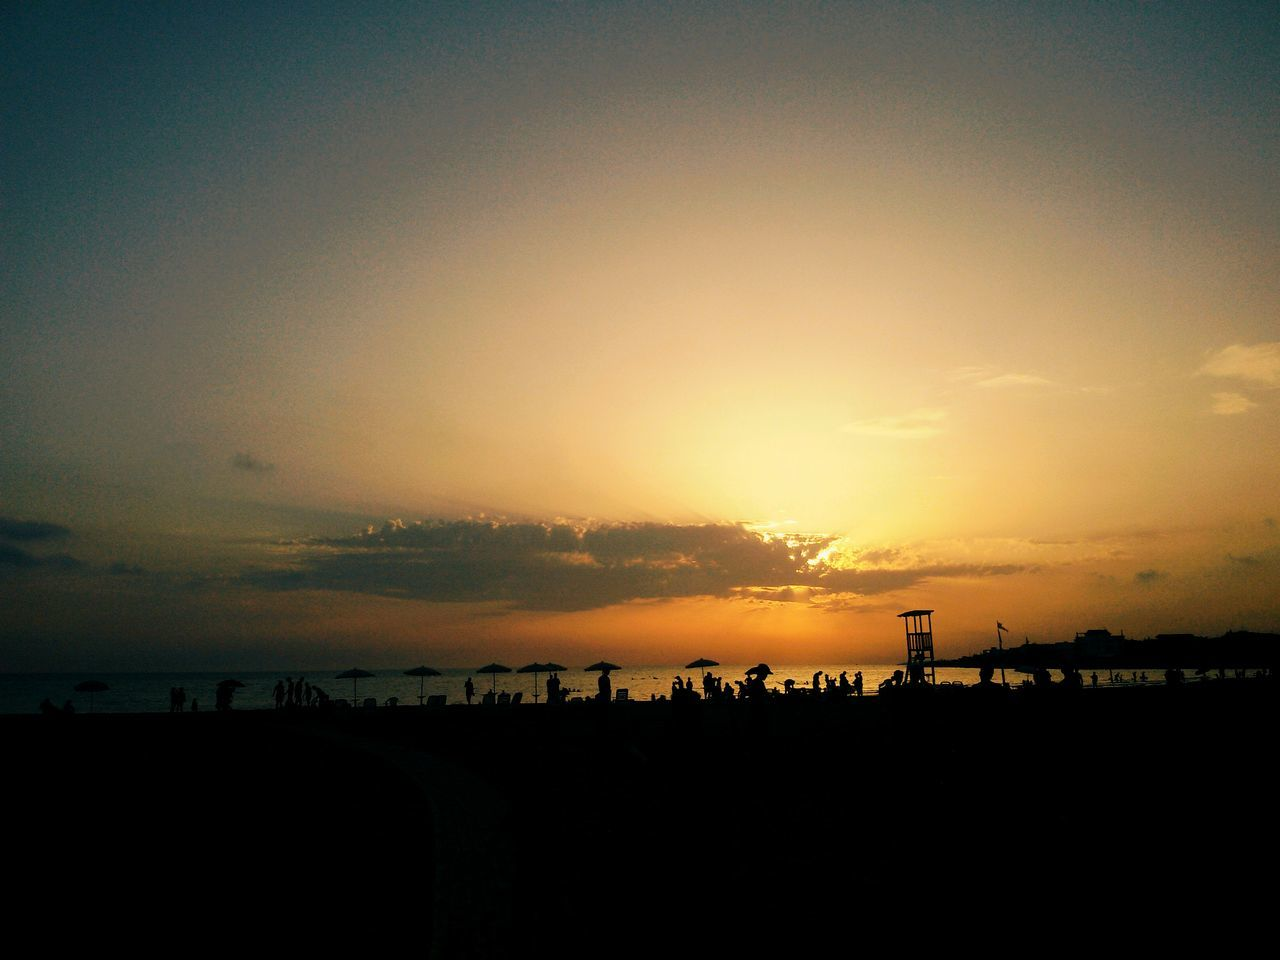 sunset, silhouette, sky, scenics, tranquil scene, beauty in nature, tranquility, nature, outdoors, cloud - sky, beach, landscape, sea, no people, horizon over water, tree, day